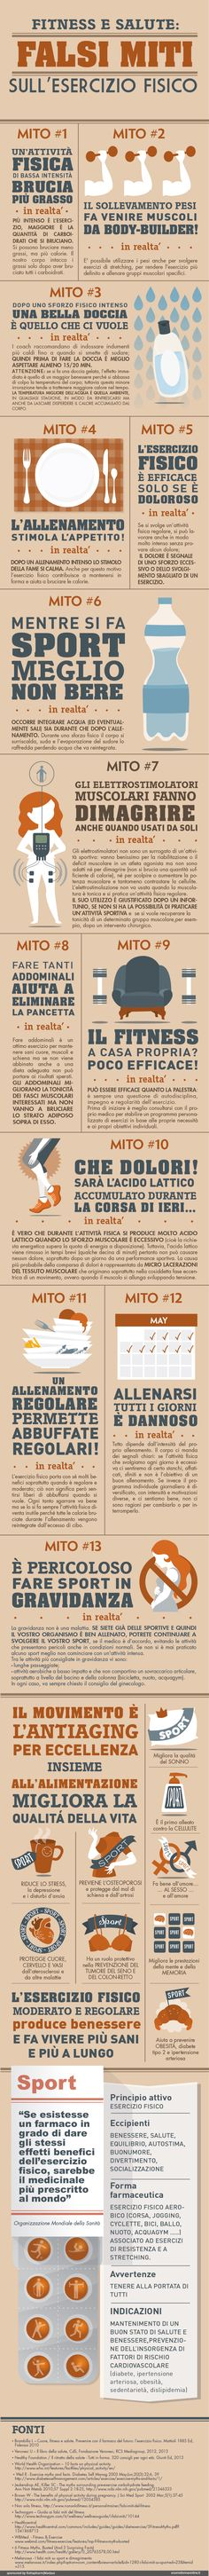 ingofraphic: i falsi miti dell'attività sportiva per Esseredonnaonline.com testi Daniela Consonni - infographics designed for esseredonnaonline.it- illustrated by Alice Kle Borghi, kleland.com